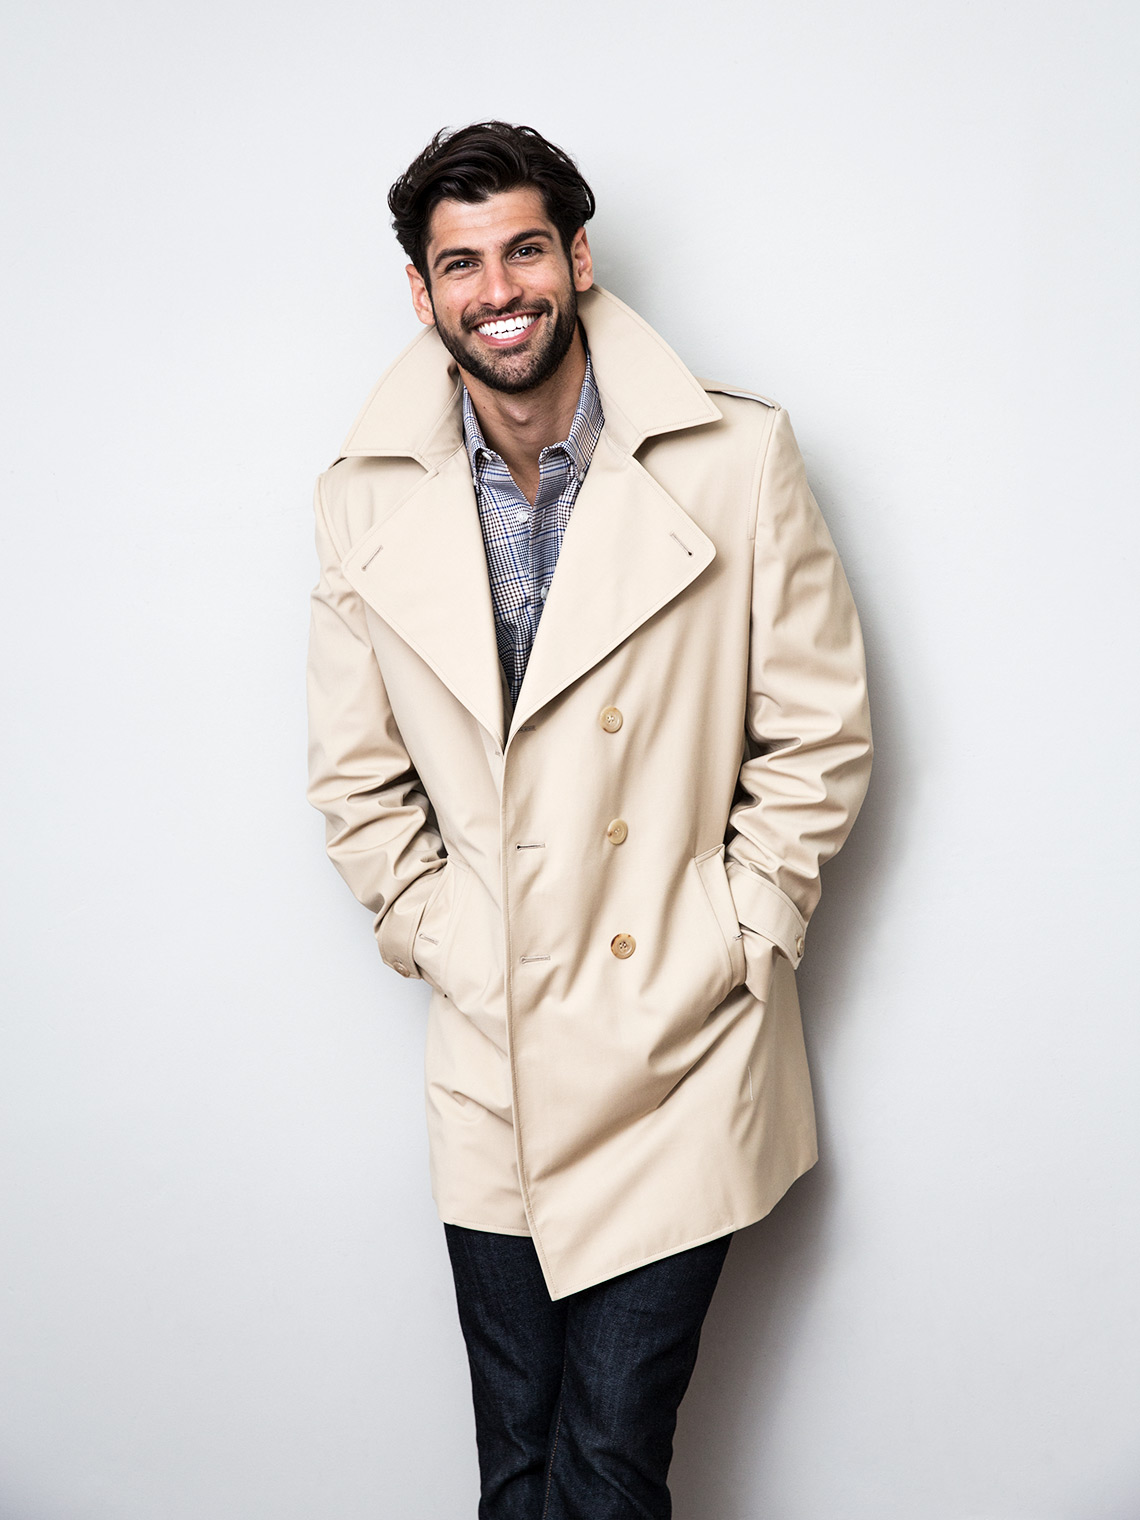 brian-sorg-tc-nyc-13-TCM_Lookbook_Gant_Shot04_054